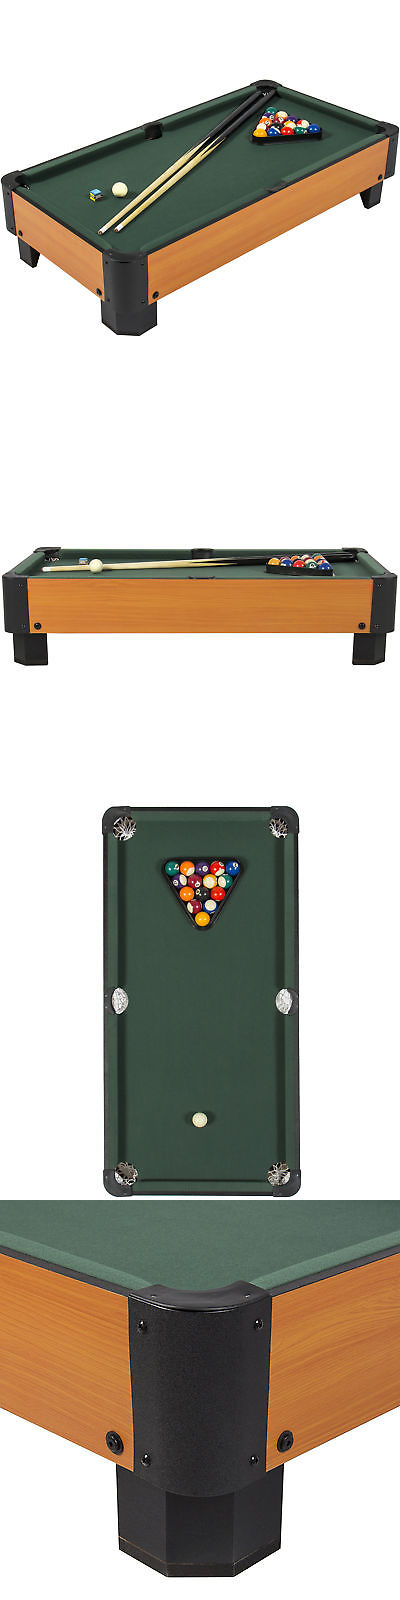 Tables 21213: Best Choice Products Sport 40 Billiards Pool Table Top Game  Set  U003e